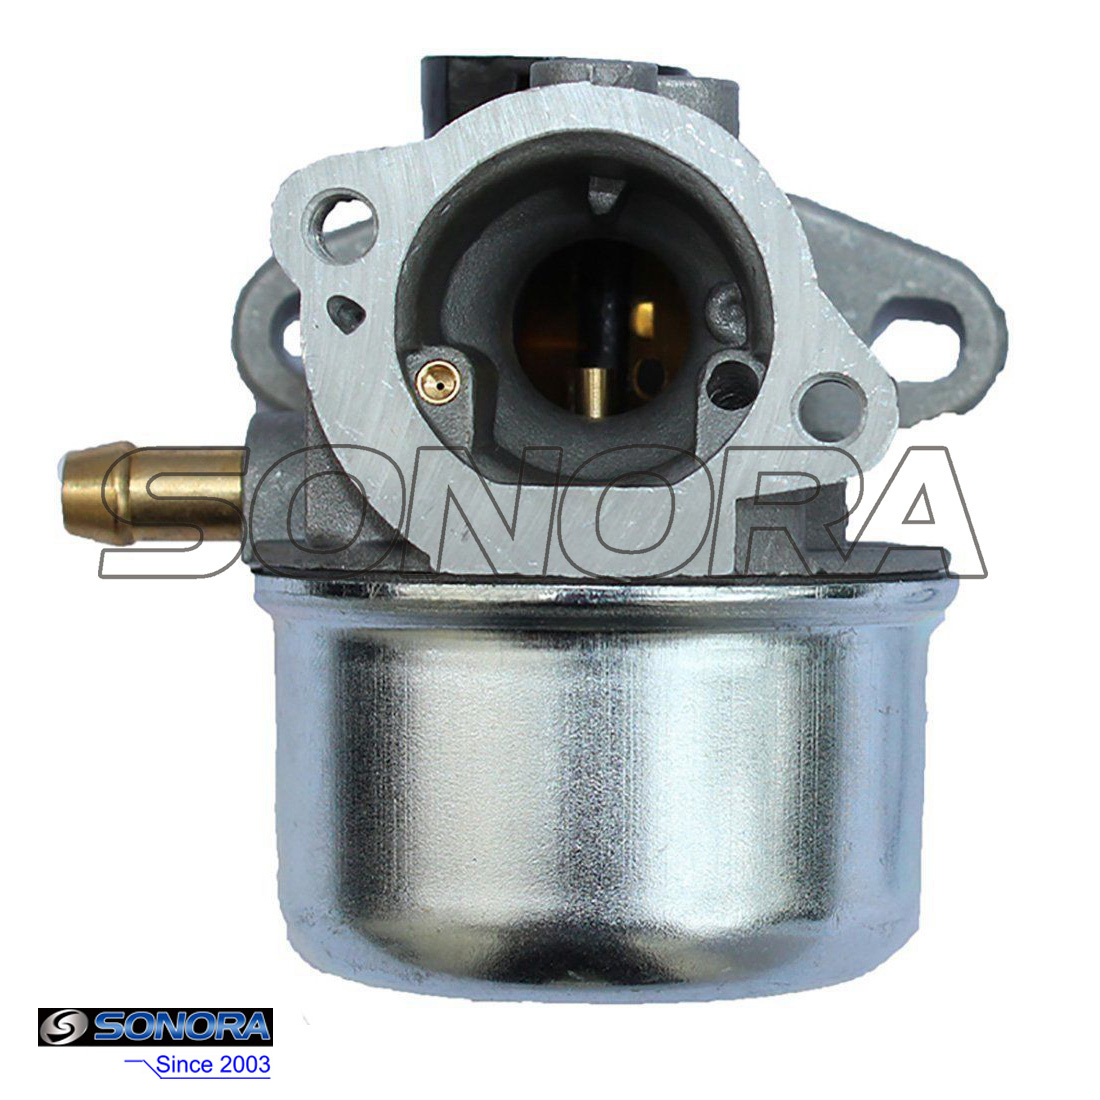 BRIGGS & STRATTON 498170 Carburetor